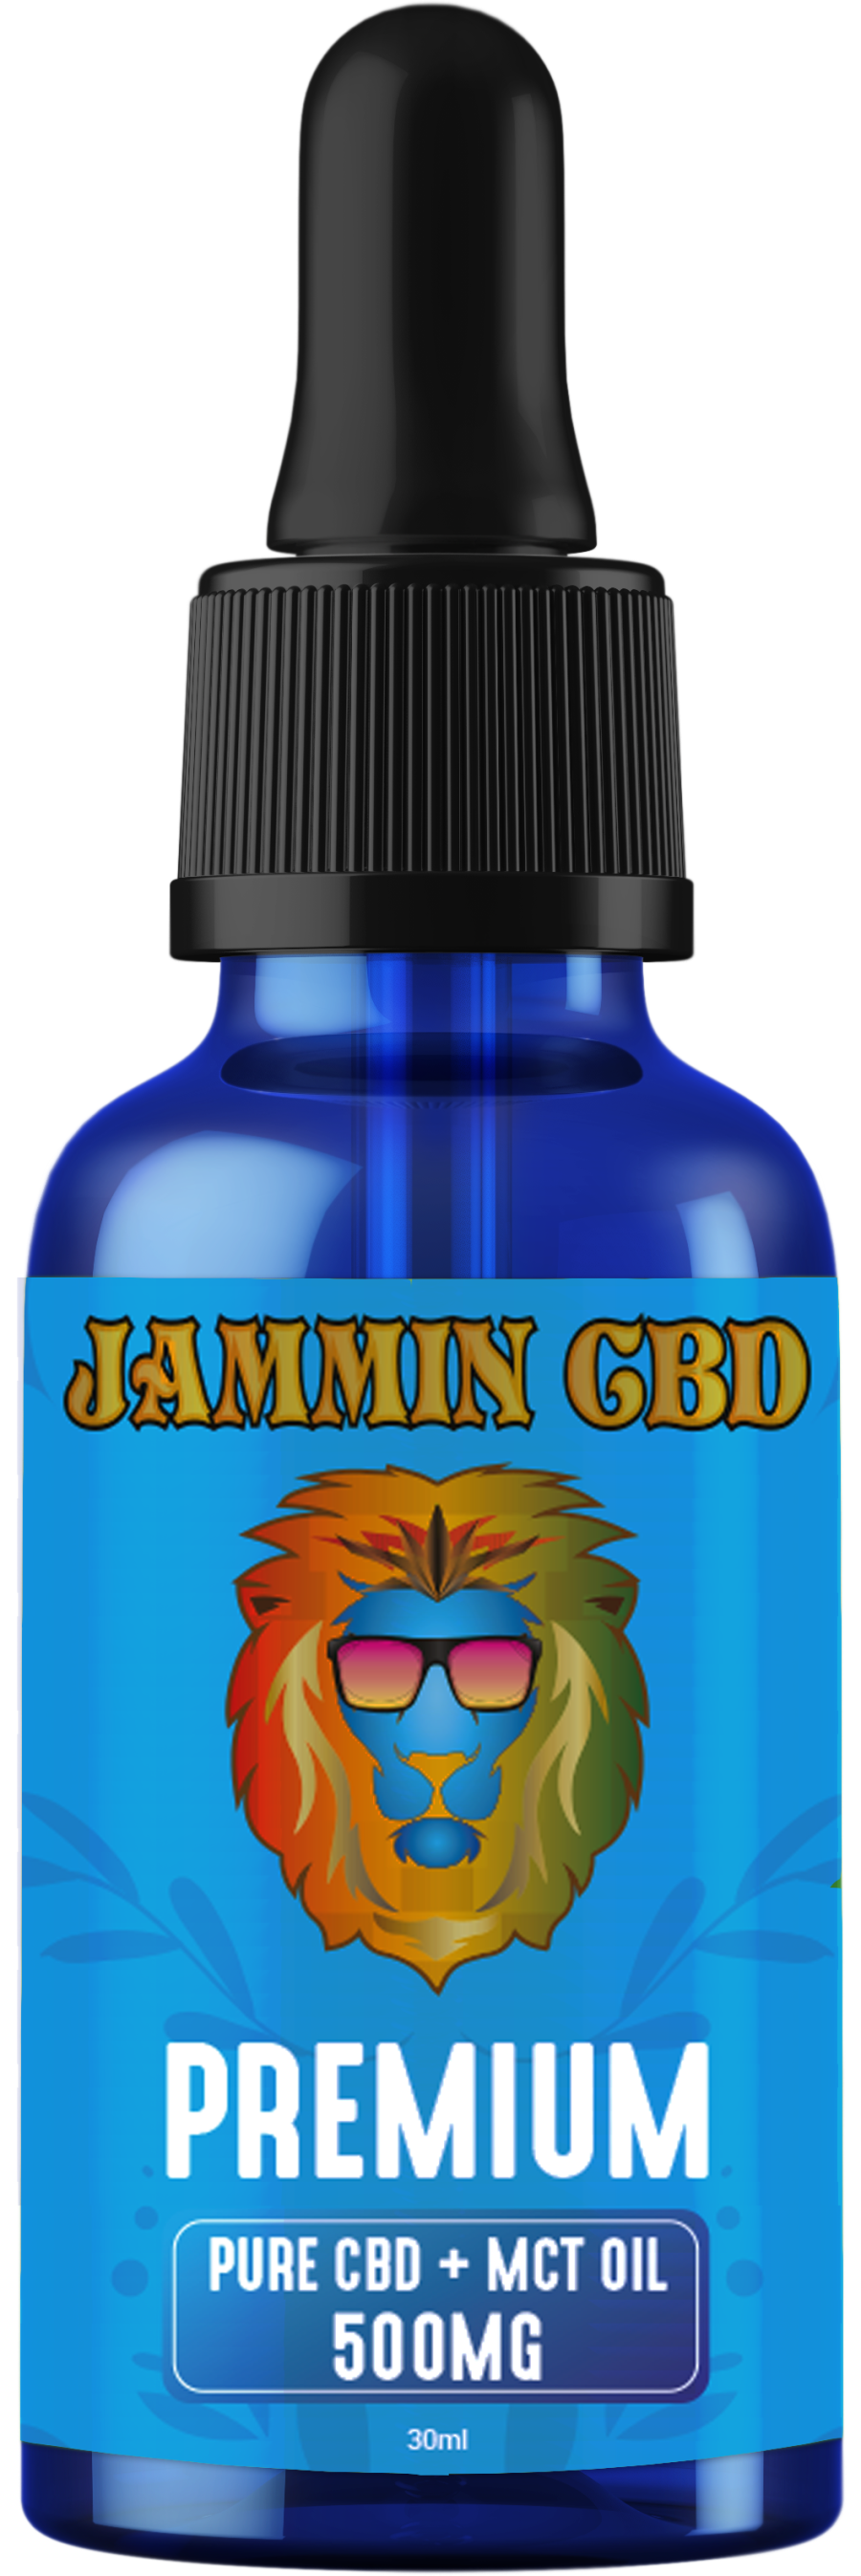 Jammin CBD Premium CBD Oil + MCT 30ml 500mg